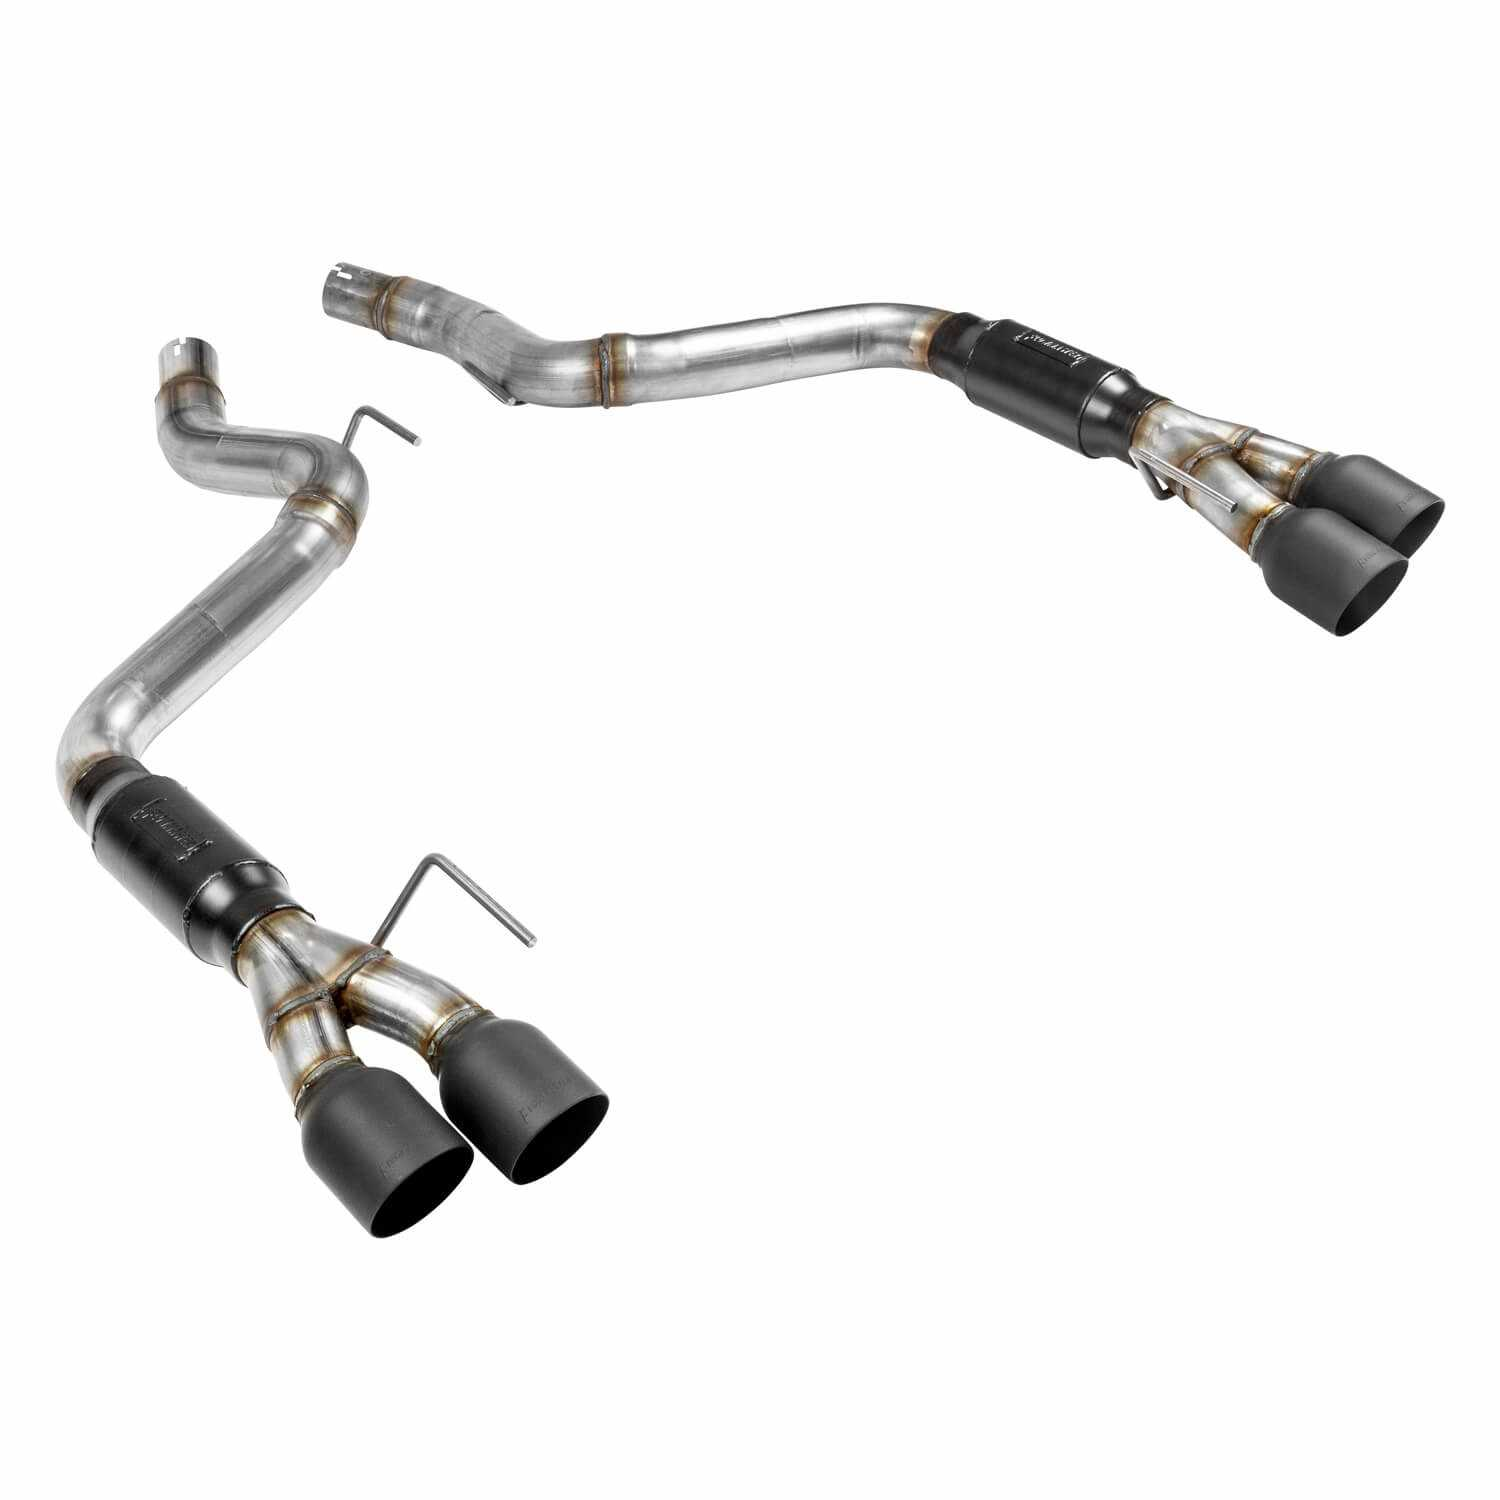 817806 Flowmaster Outlaw Series™ Axle Back Exhaust System